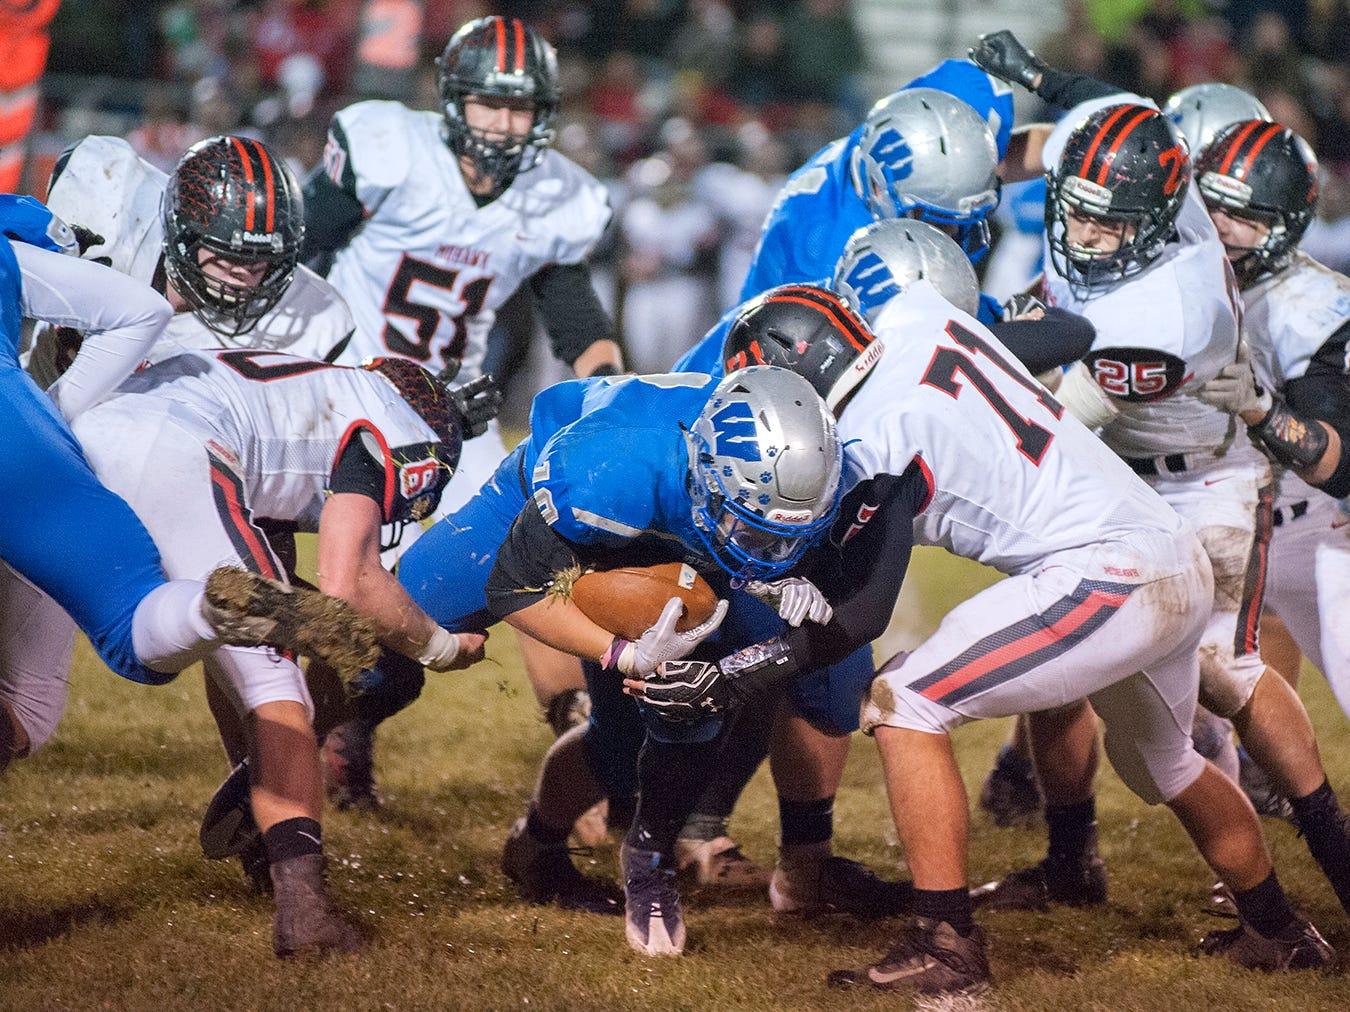 Wynford's Blake Sparks is tackled while rushing.